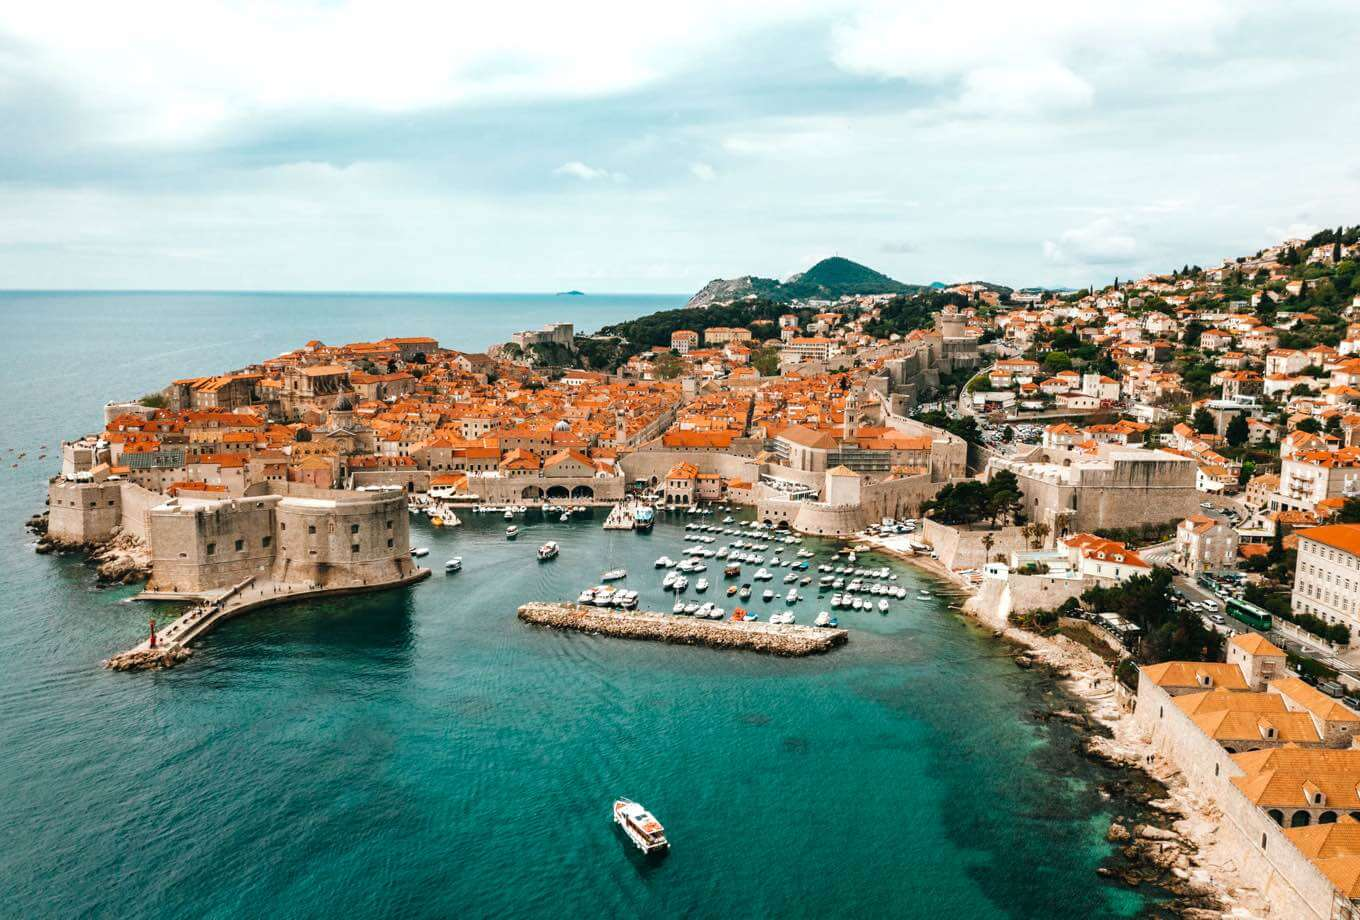 Boats docking in stunning Dubrovnik harbour